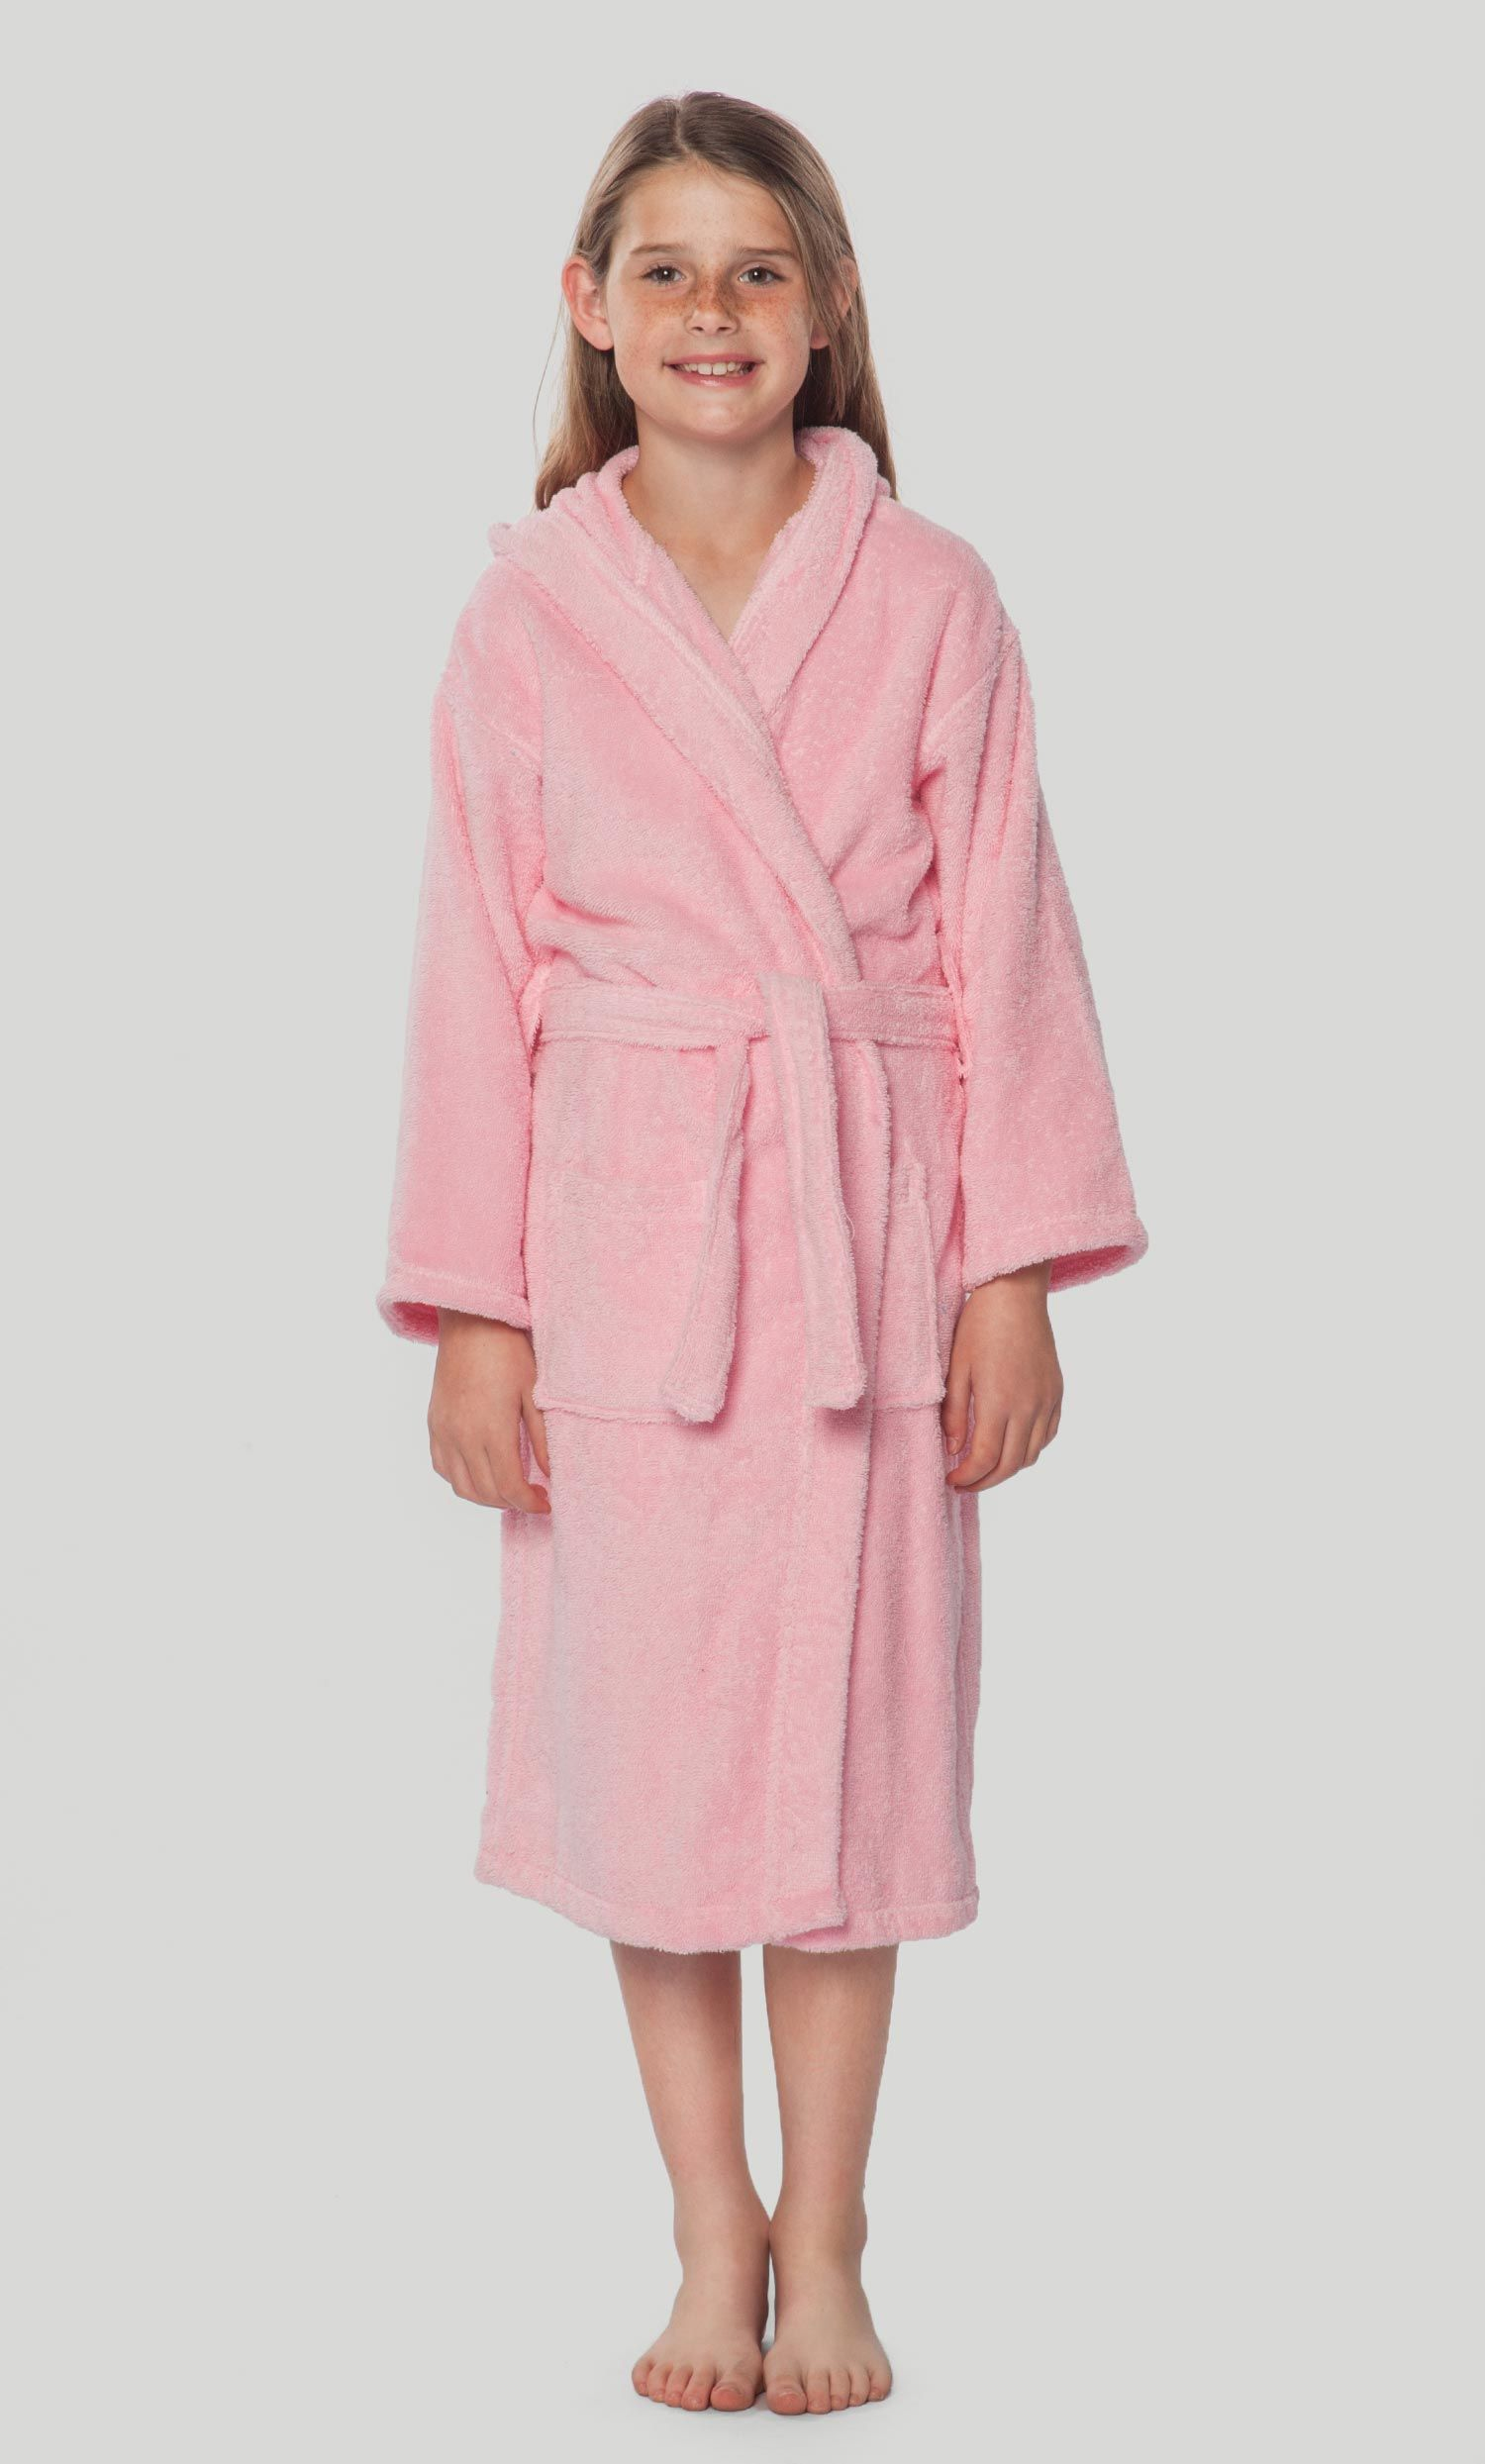 256ef67f25 Kids Bathrobes    Terry Kids Hooded Bathrobes    100% Turkish Cotton Pink  Hooded Terry Kid s Bathrobe - Wholesale bathrobes